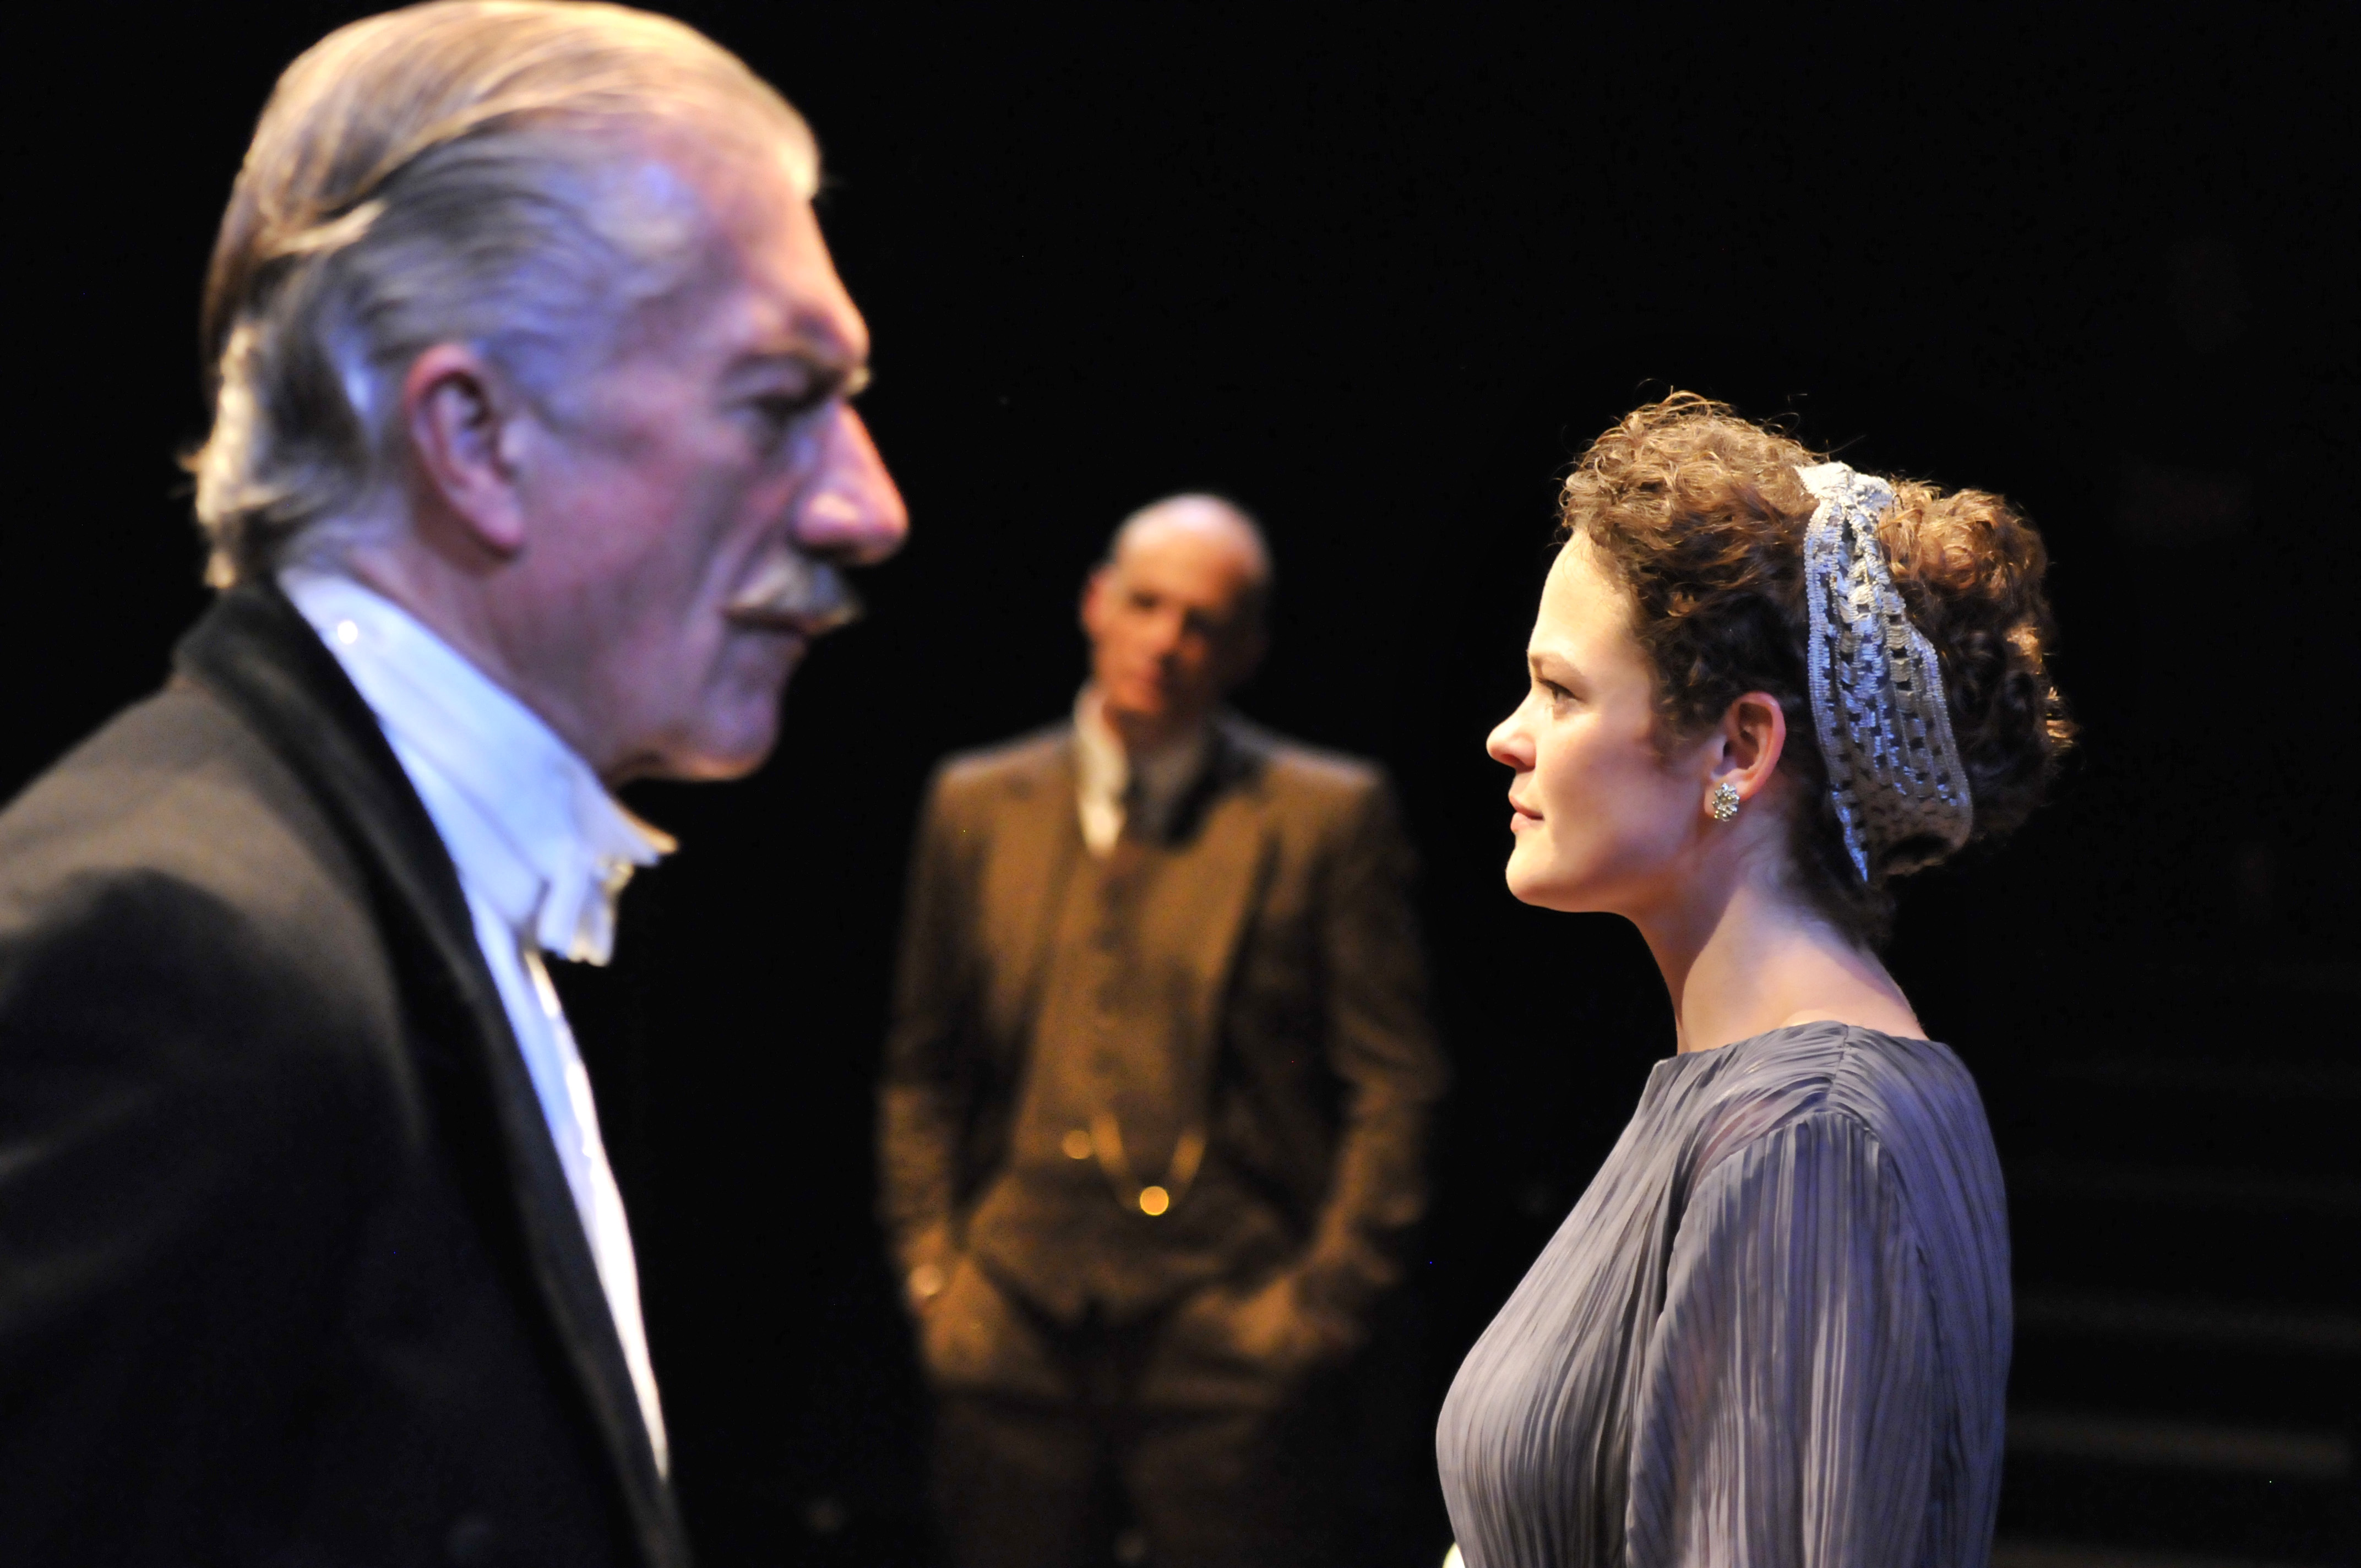 inspector calls An inspector calls by jb priestley an inspector calls, by jb priestly, is the story of the visit by an inspector to an apparently normal family, the birlings they are celebrating sheila birling's engagement to gerald croft, who is also present, when the inspector arrives telling them of the suicide of a young girl called eva smith.